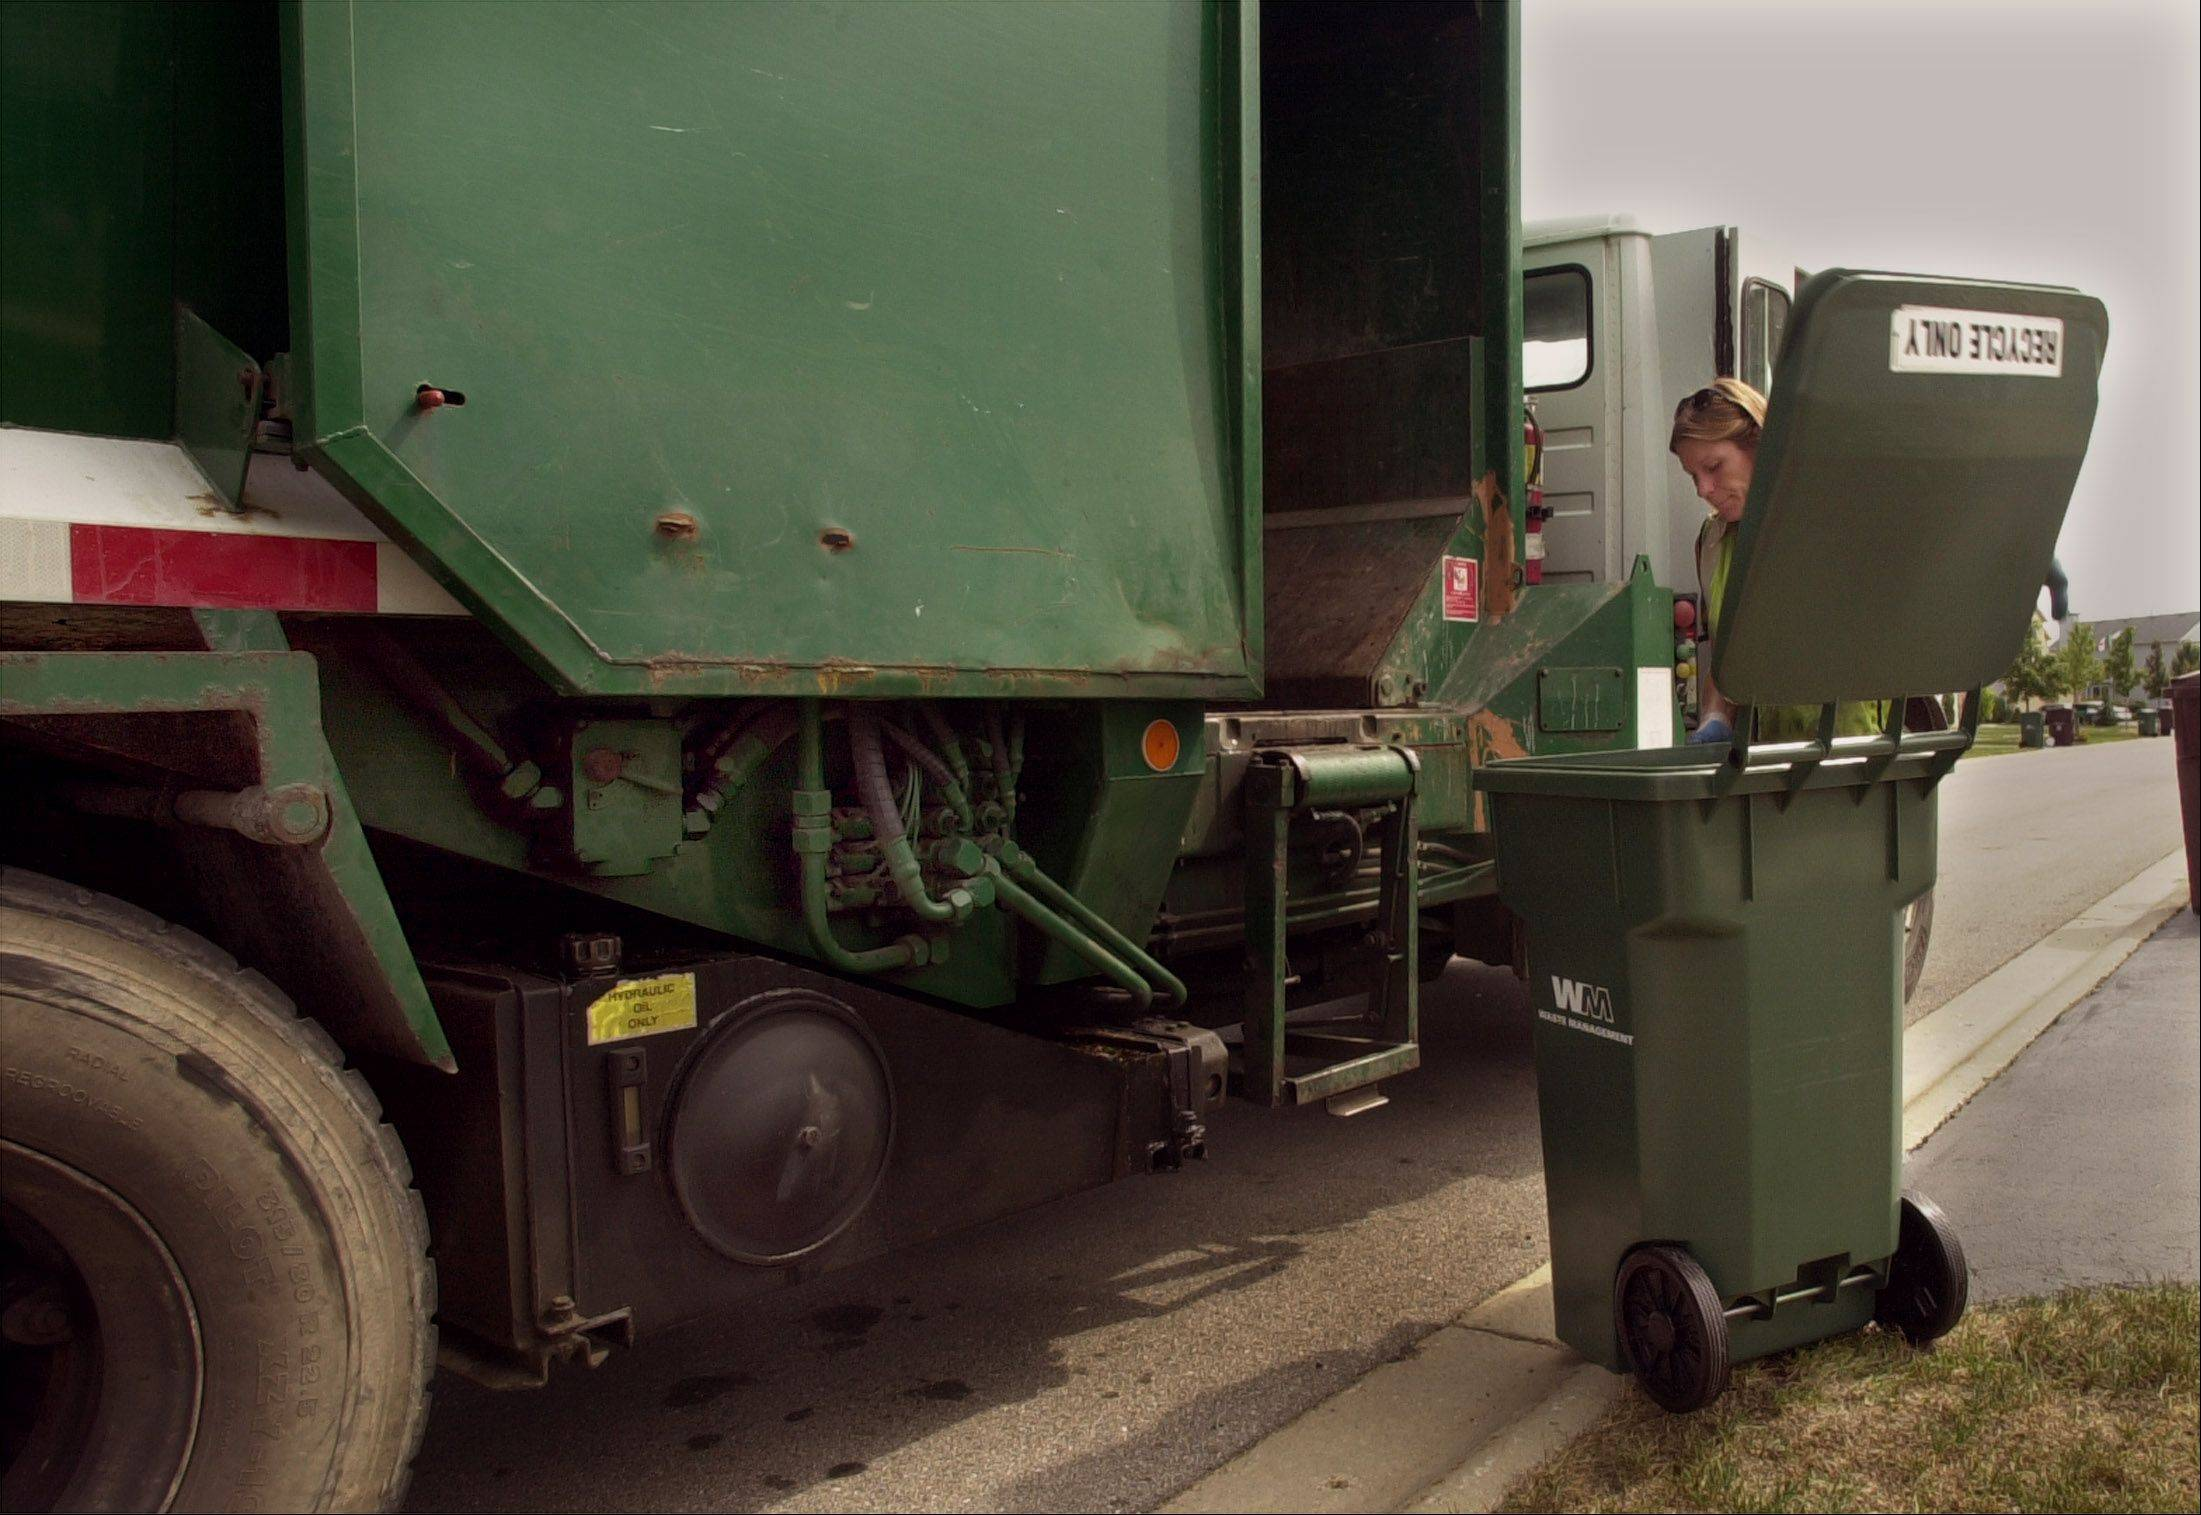 Modifications to the Lake County solid waste and recycling ordinance that take effect Jan. 1 make it mandatory for haulers in the unincorporated area to provide recycling service to those homes that don't now get it.